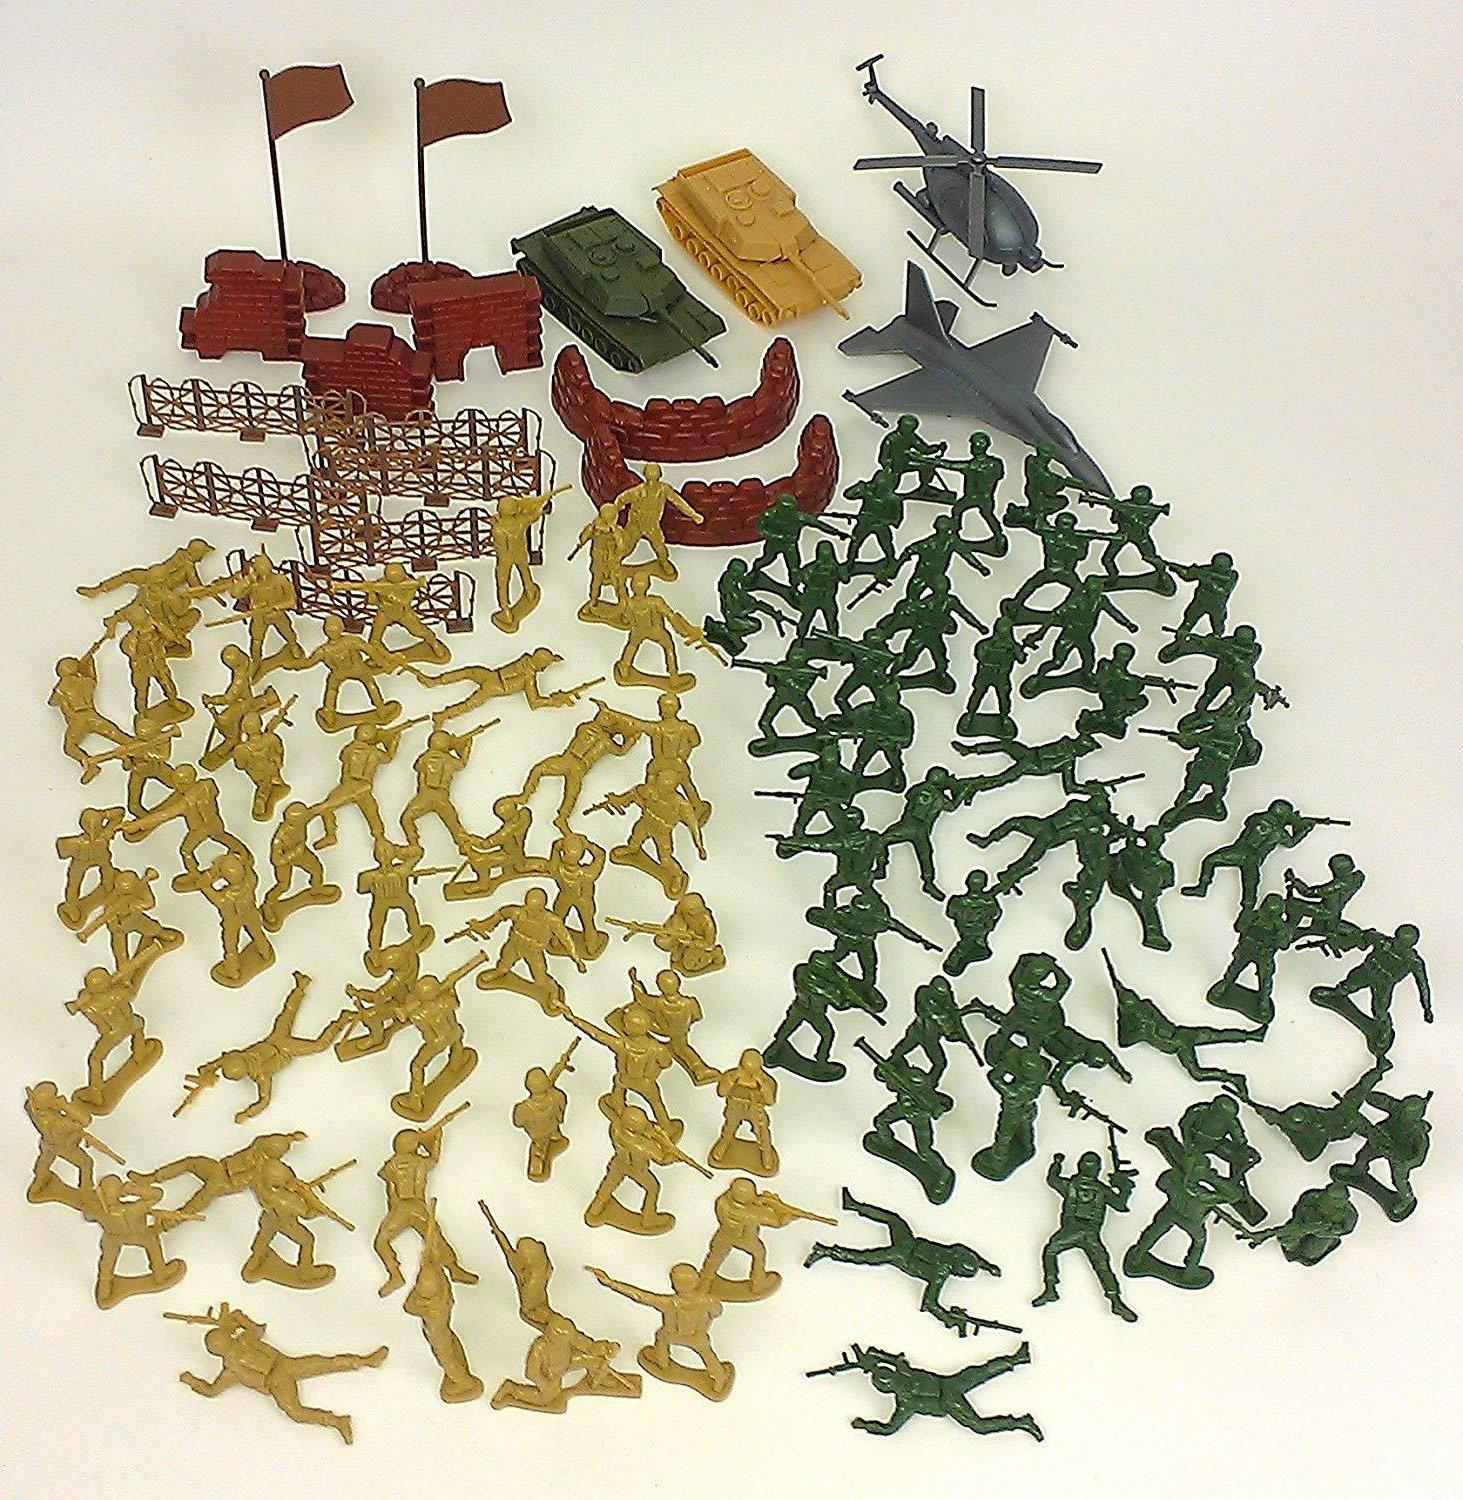 Elite Force Battle Army Piece Military